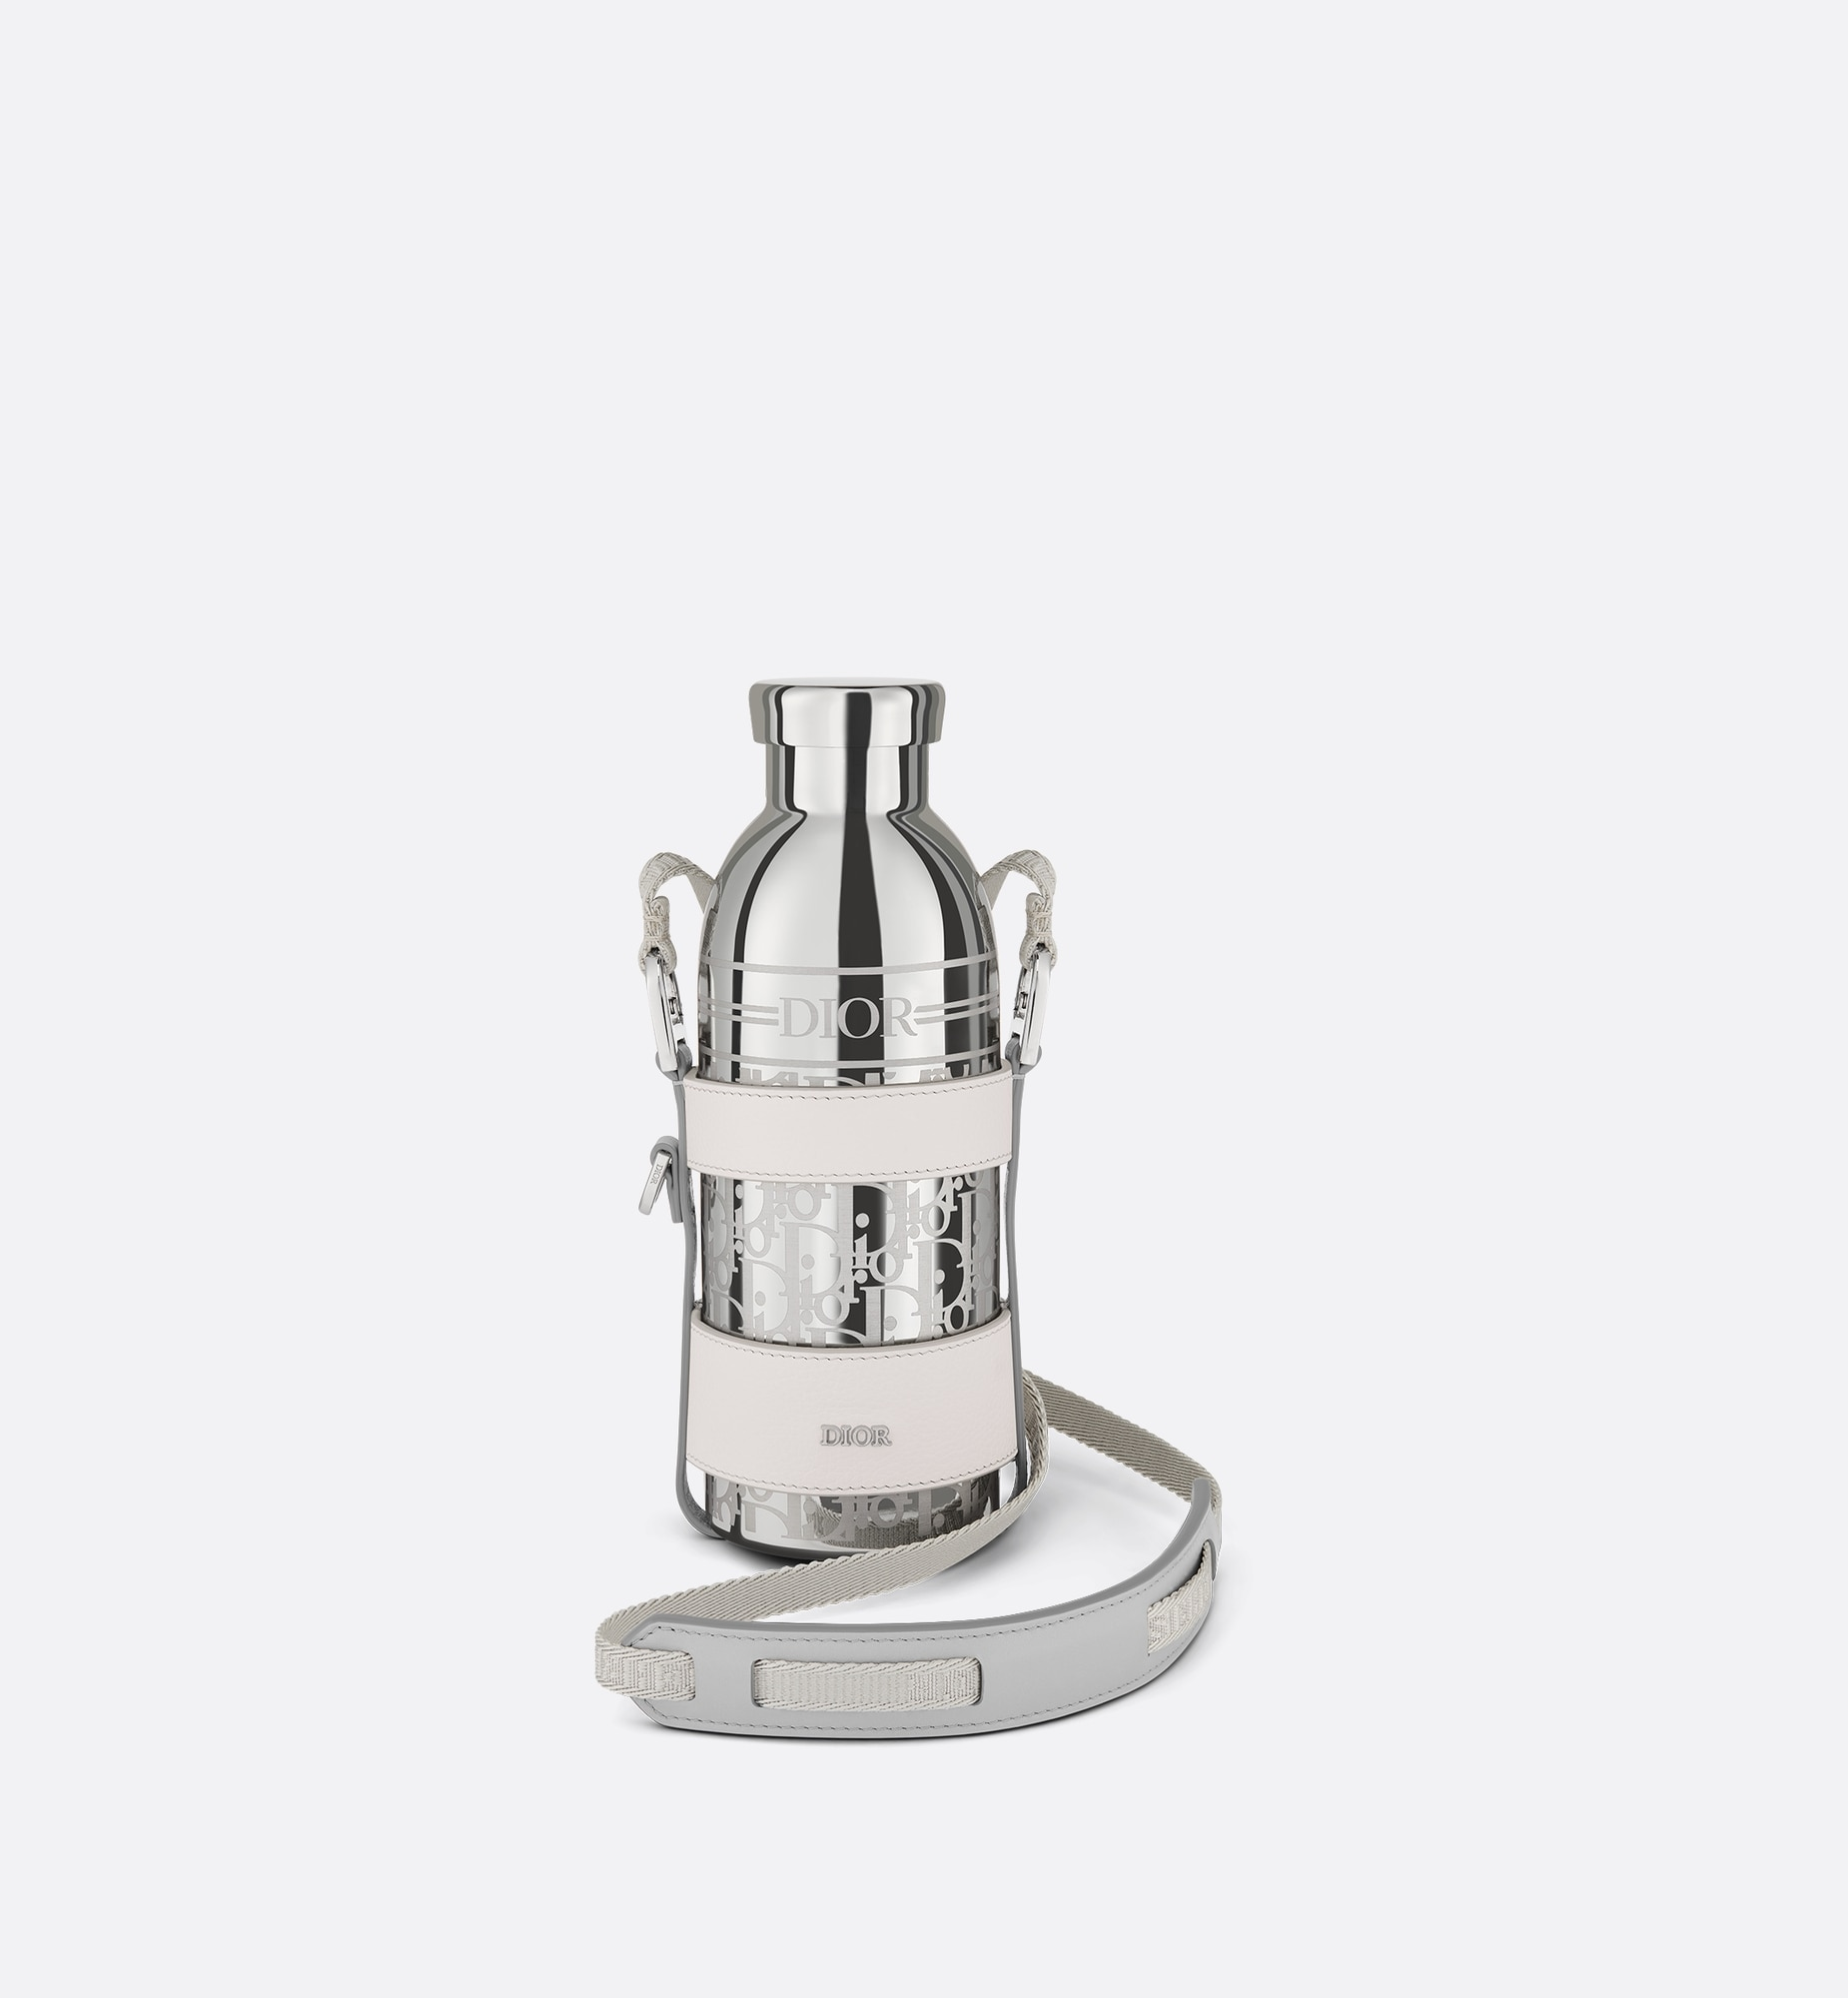 bottle holder with shoulder strap and bottle | Dior Front view